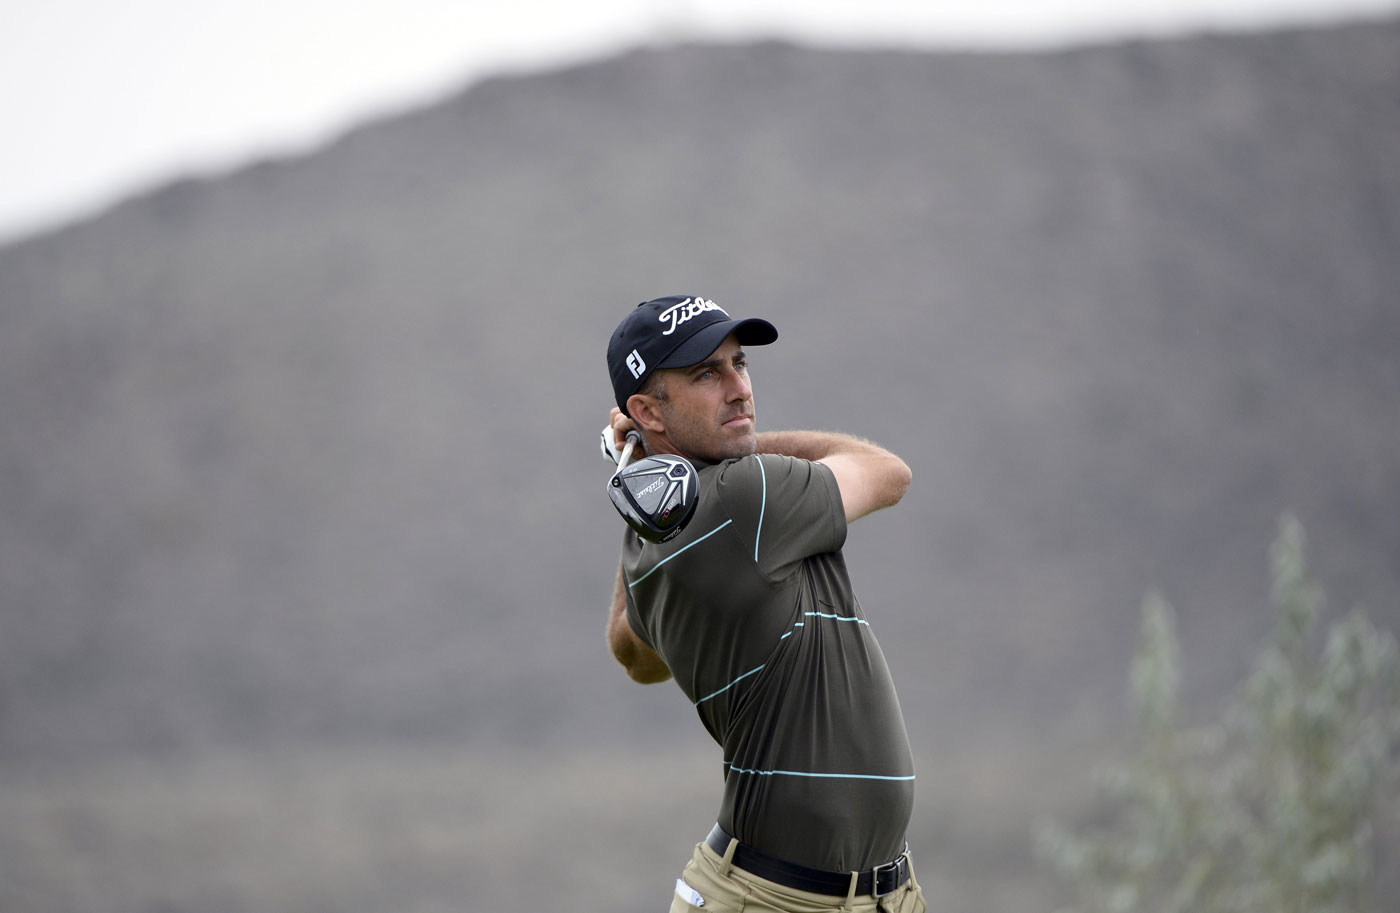 Geoff Ogilvy is back at the Hyundai Tournament of Champions after winning the Reno-Tahoe Open.